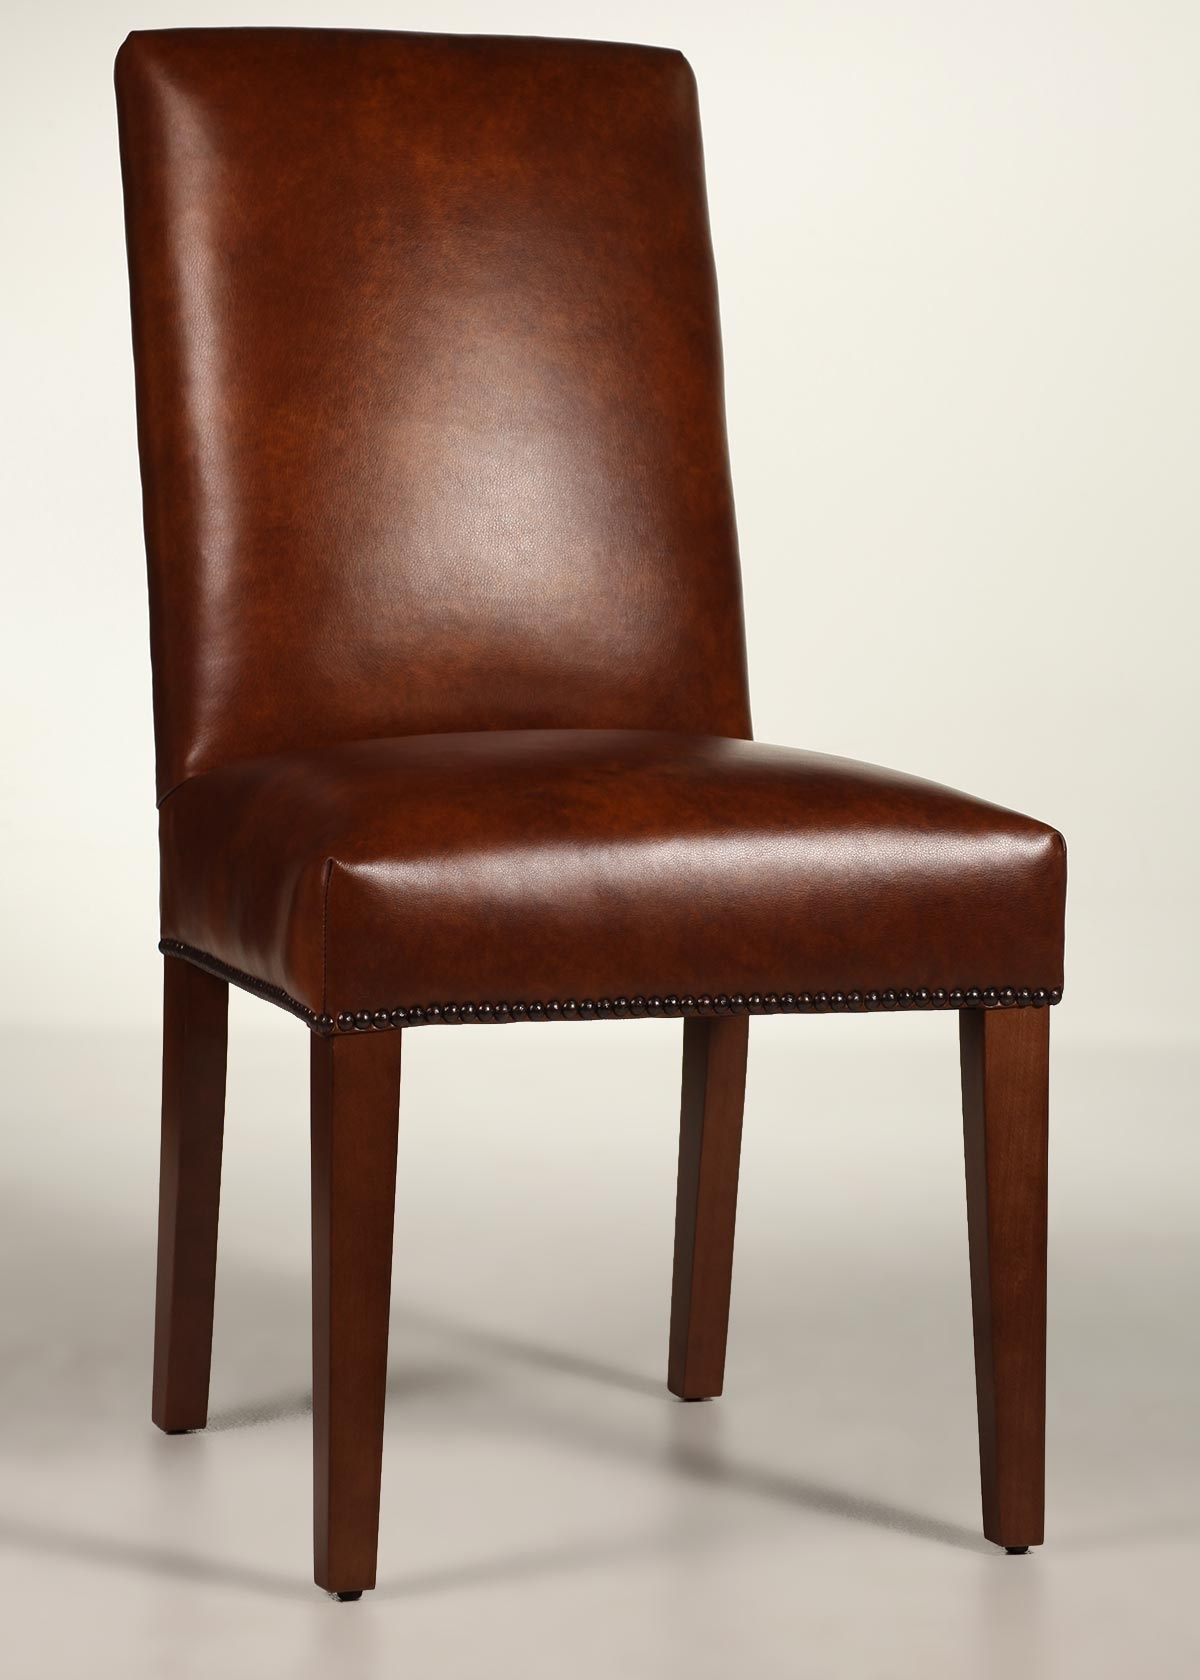 Most Popular Leather Dining Chairs Regarding Straight Back Leather Dining Chair With Tapered Legs (View 11 of 25)